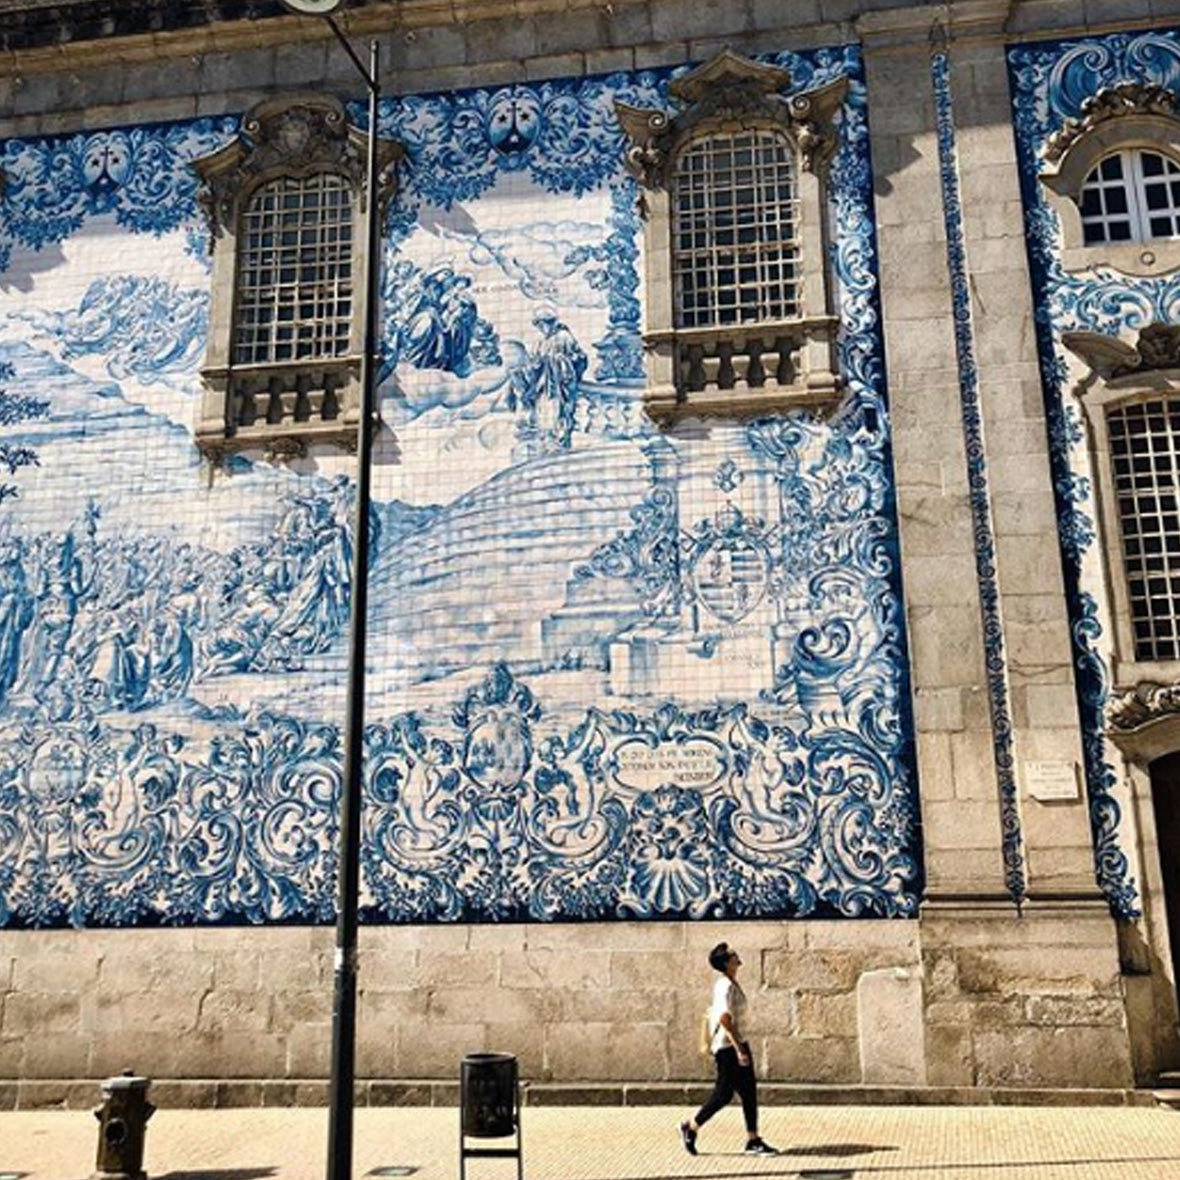 Travels through Porto with artist Paula Mills